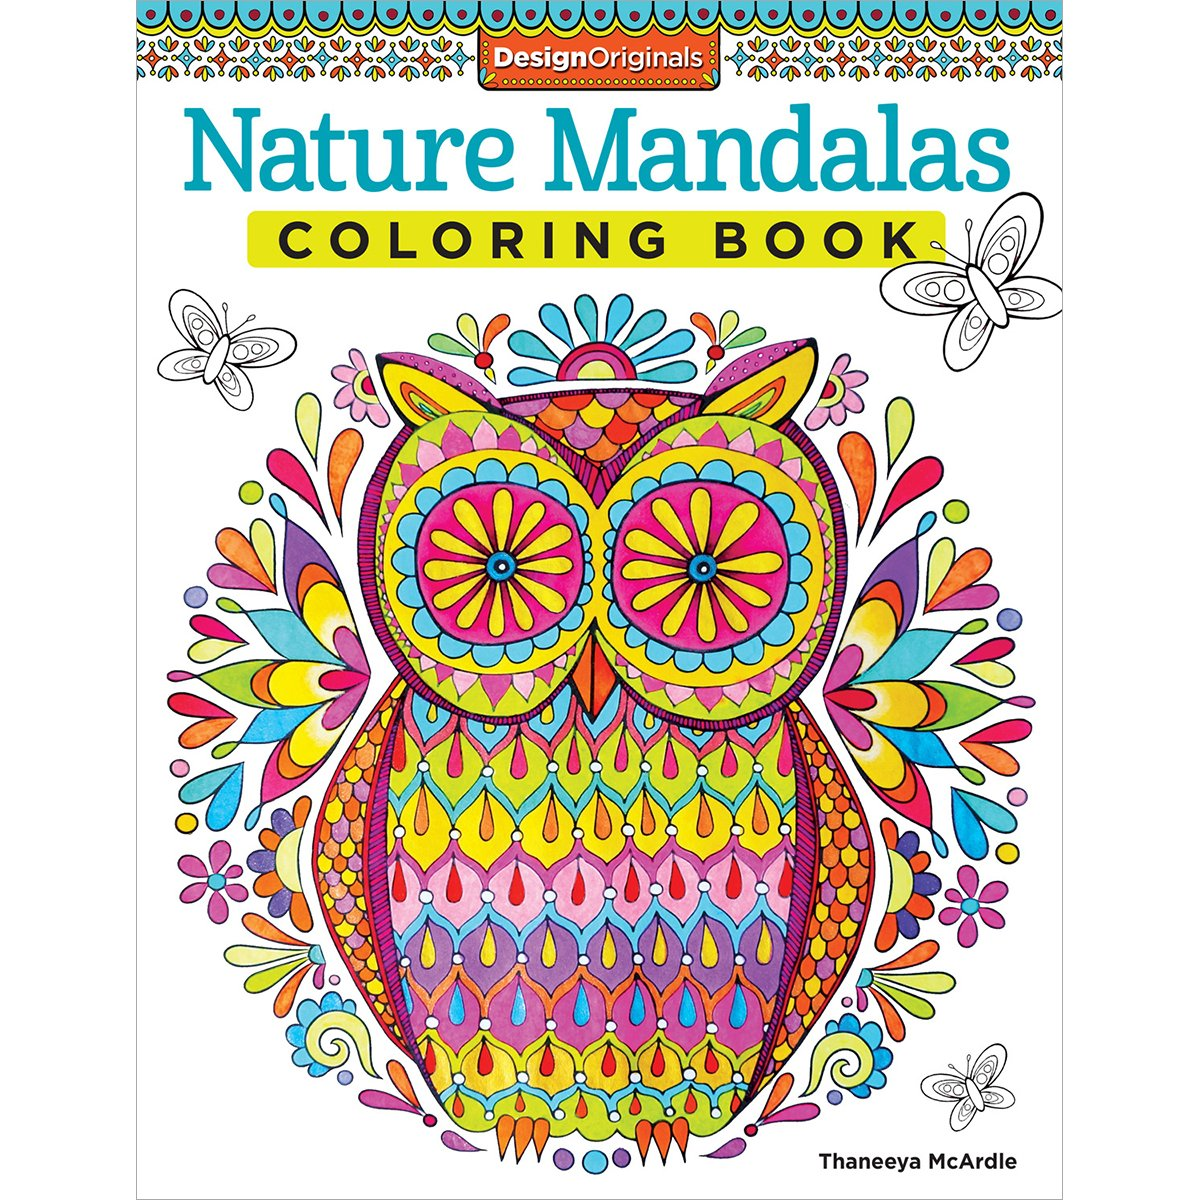 Nature Mandalas Coloring Book Thaneeya McArdle 9781574219579 Books